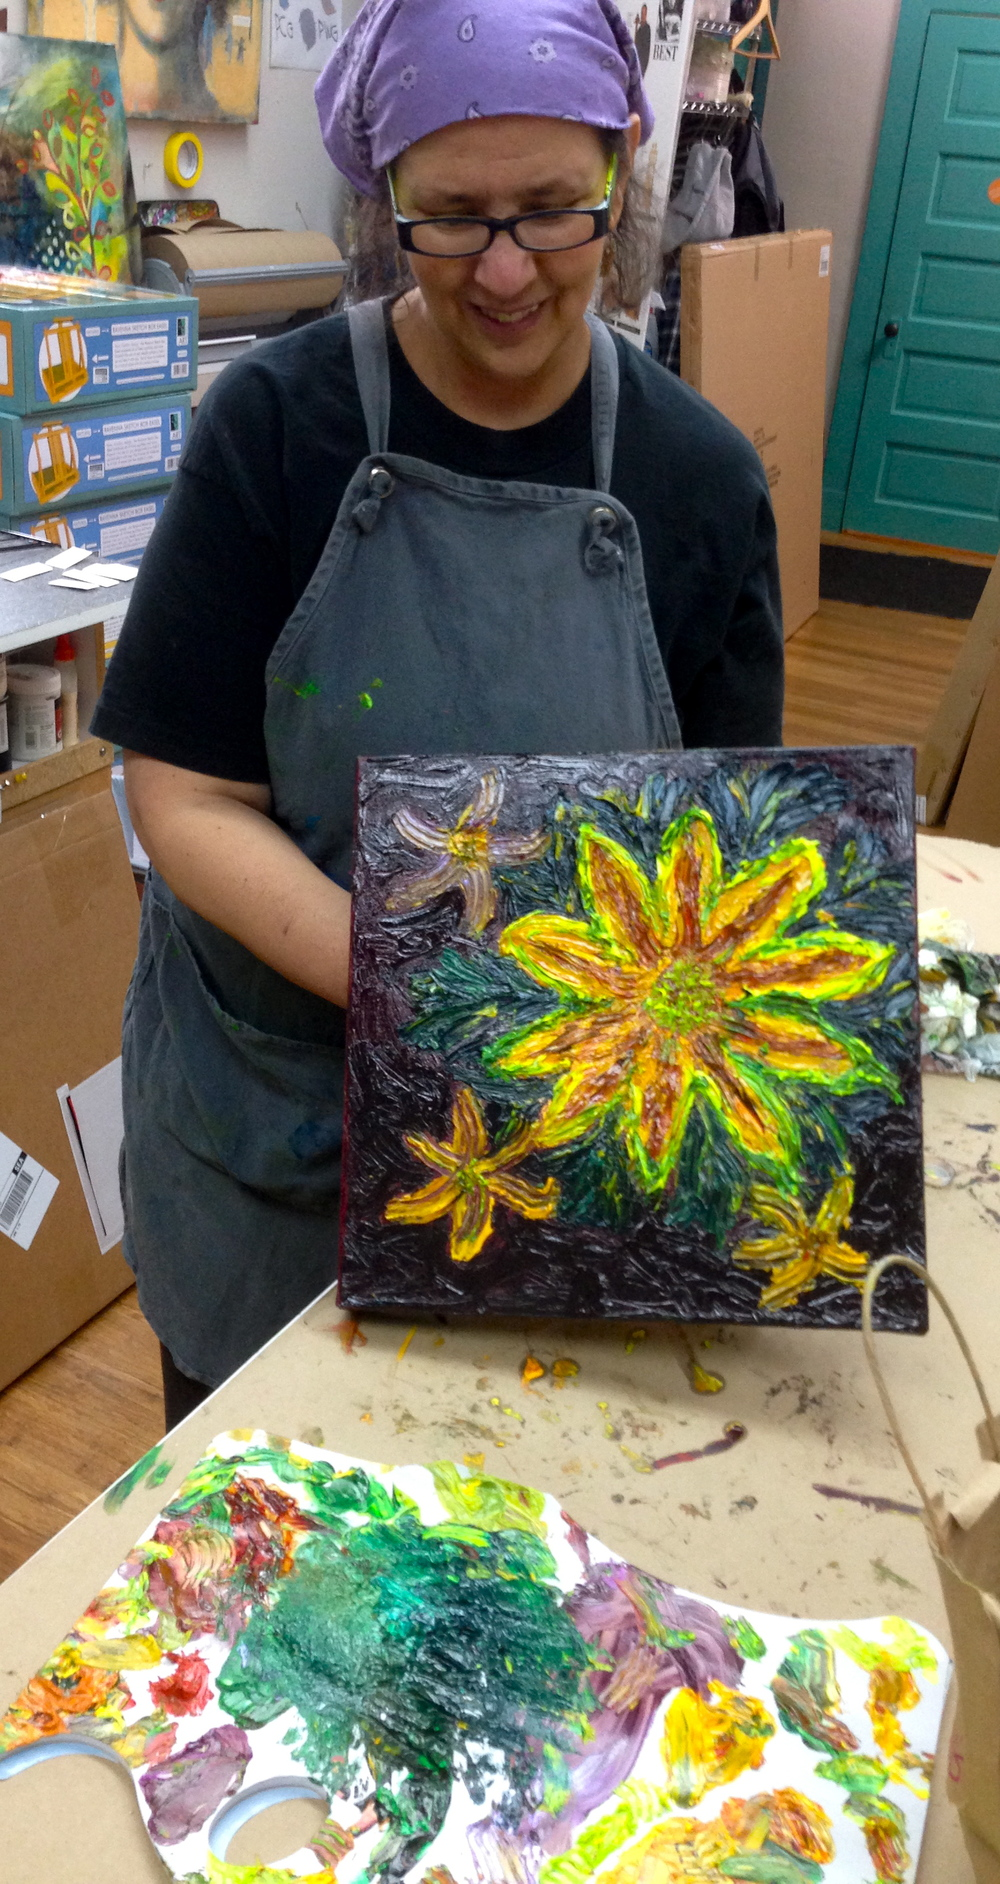 Paula at the ARTspot studio creating a painting with water soluble oil paints and applies solely with her (gloved) fingers.